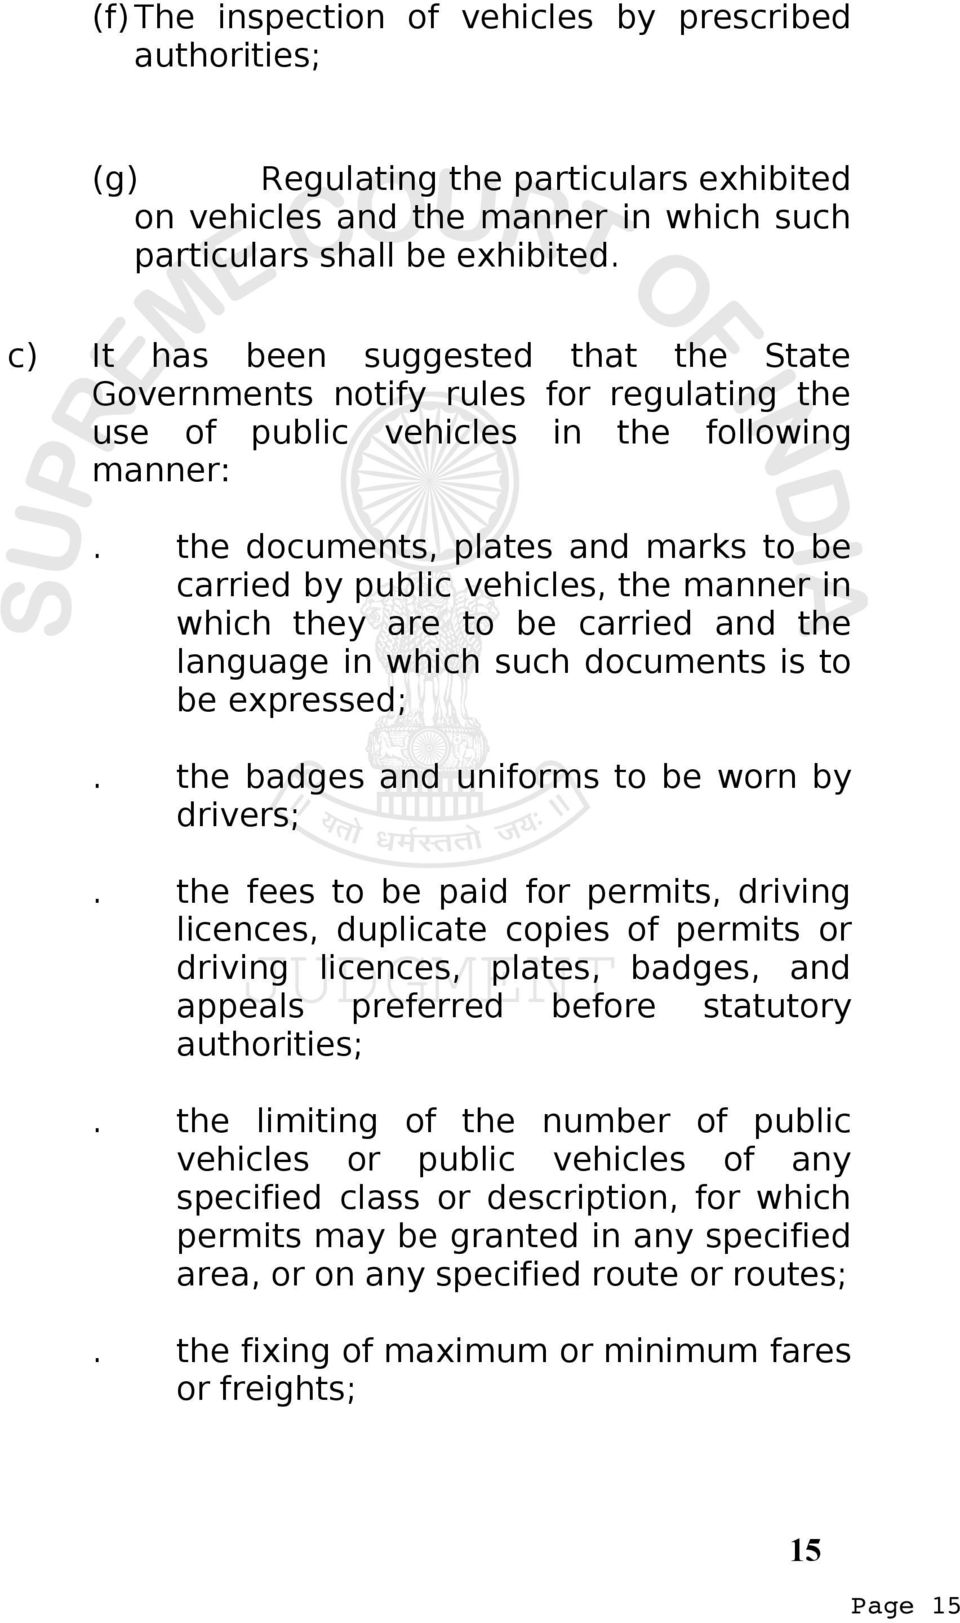 the documents, plates and marks to be carried by public vehicles, the manner in which they are to be carried and the language in which such documents is to be expressed;.